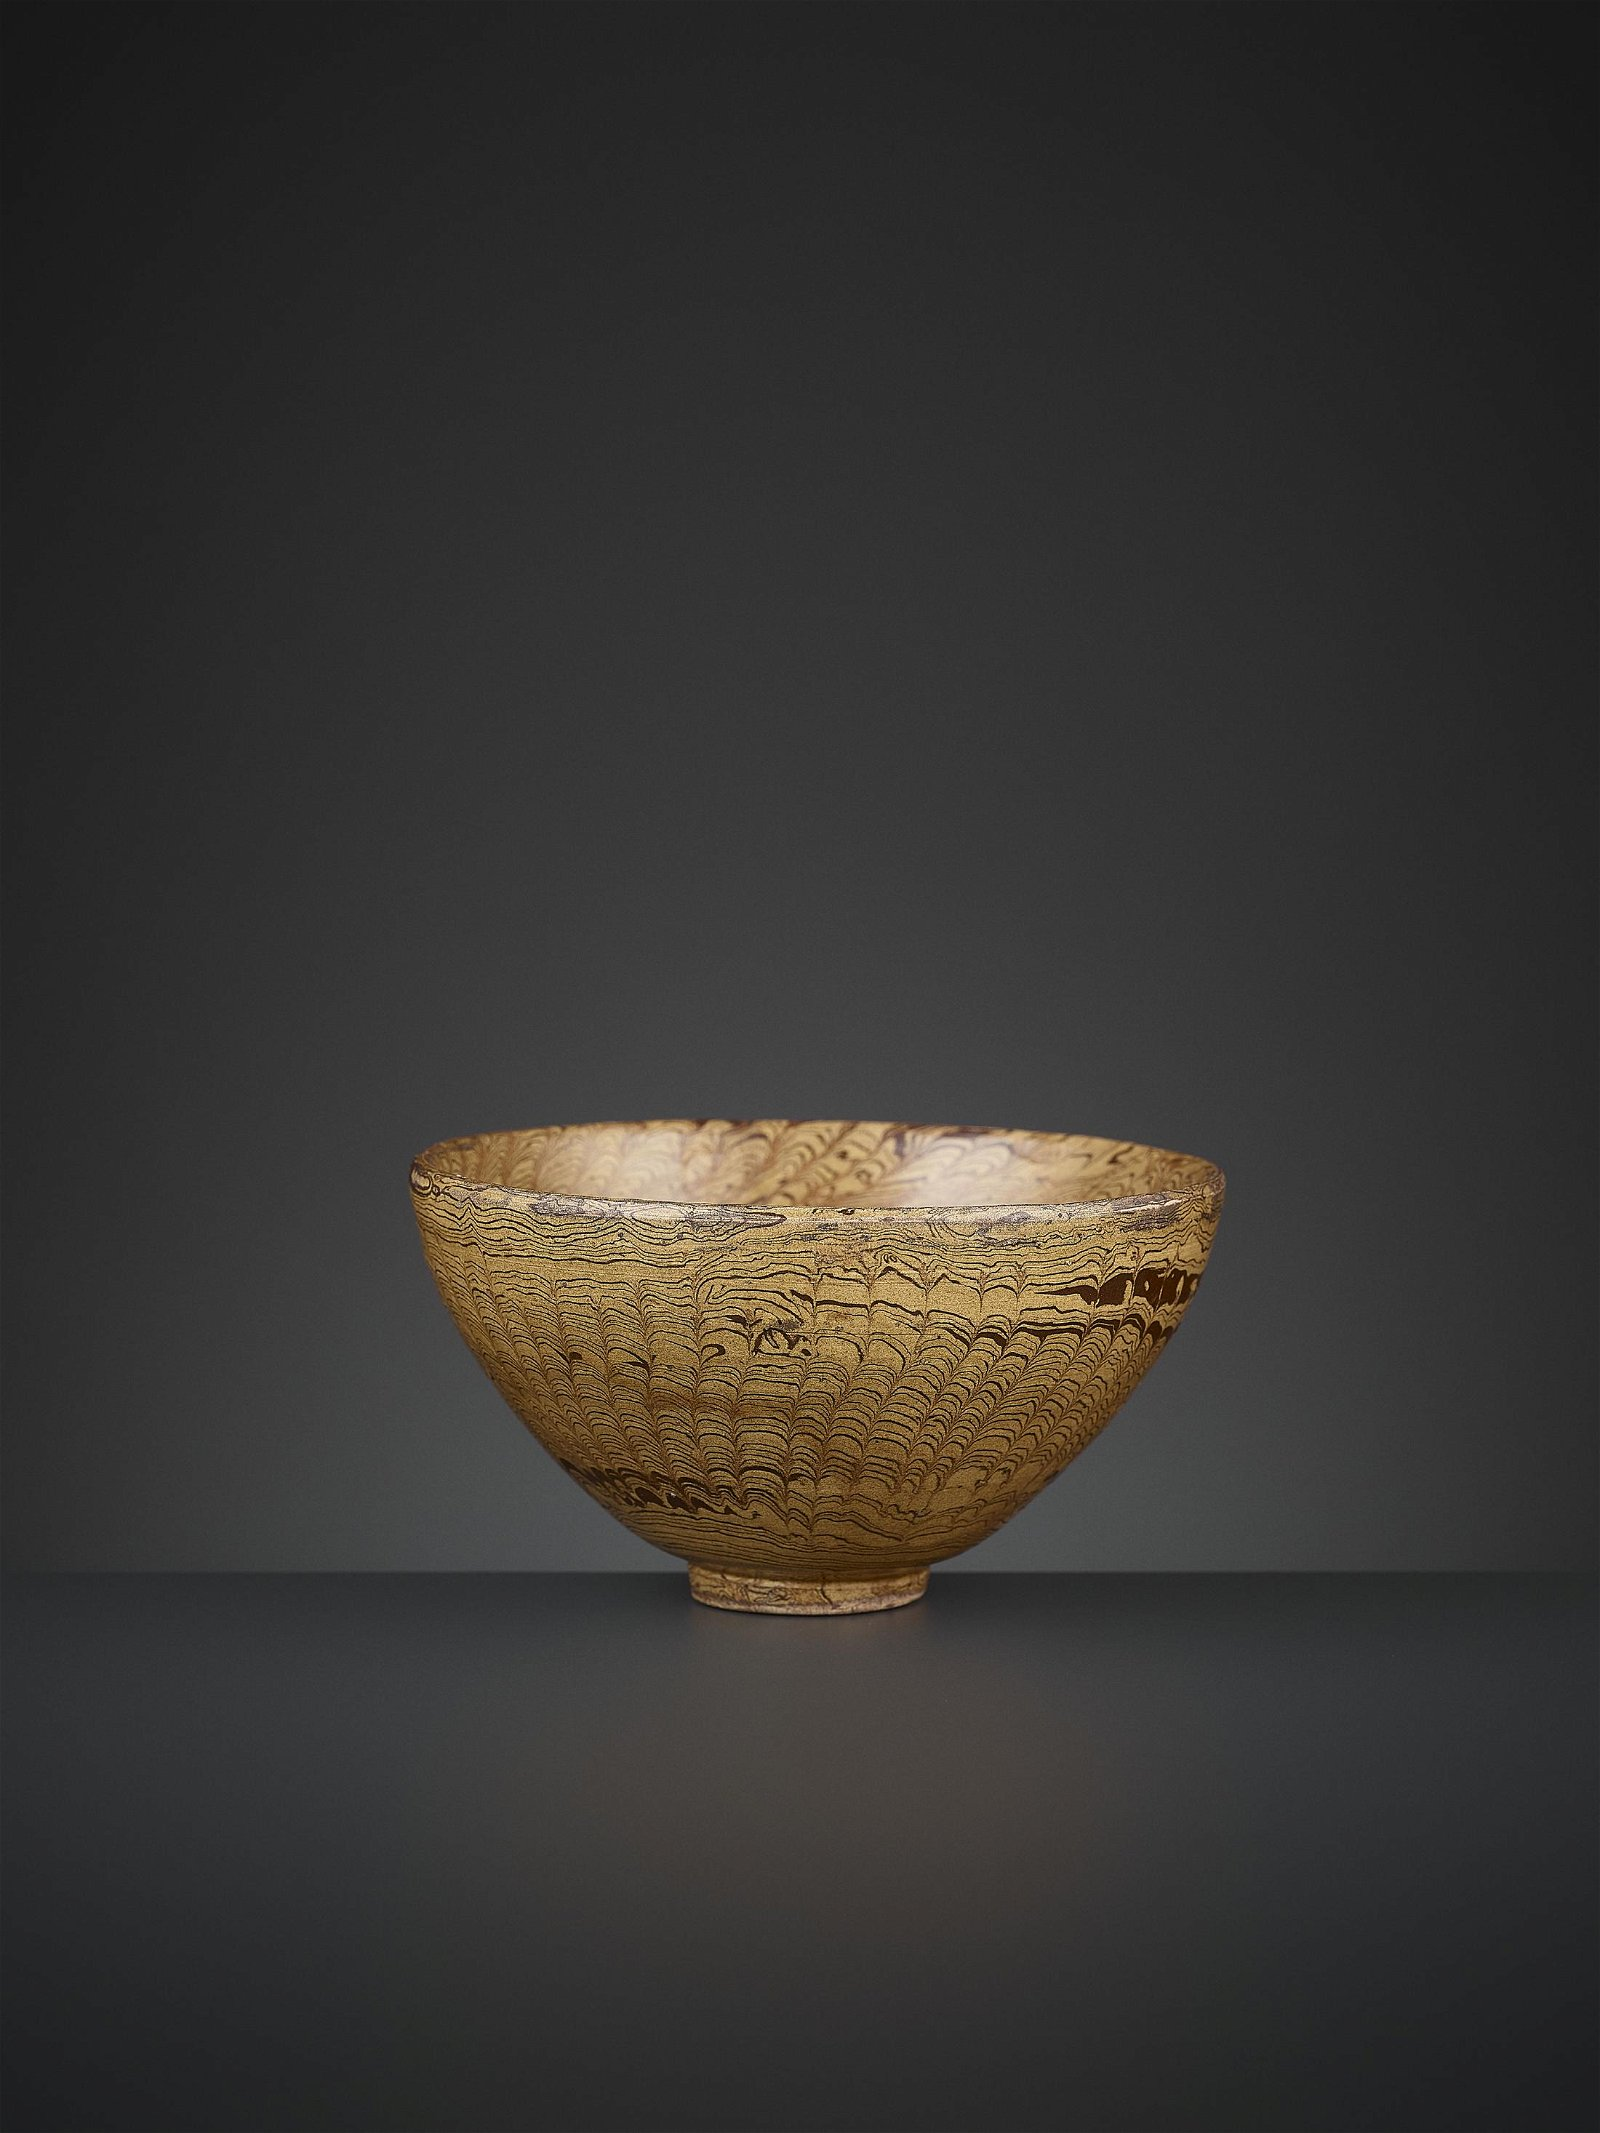 AN AMBER-GLAZED MARBLED POTTERY BOWL, TANG